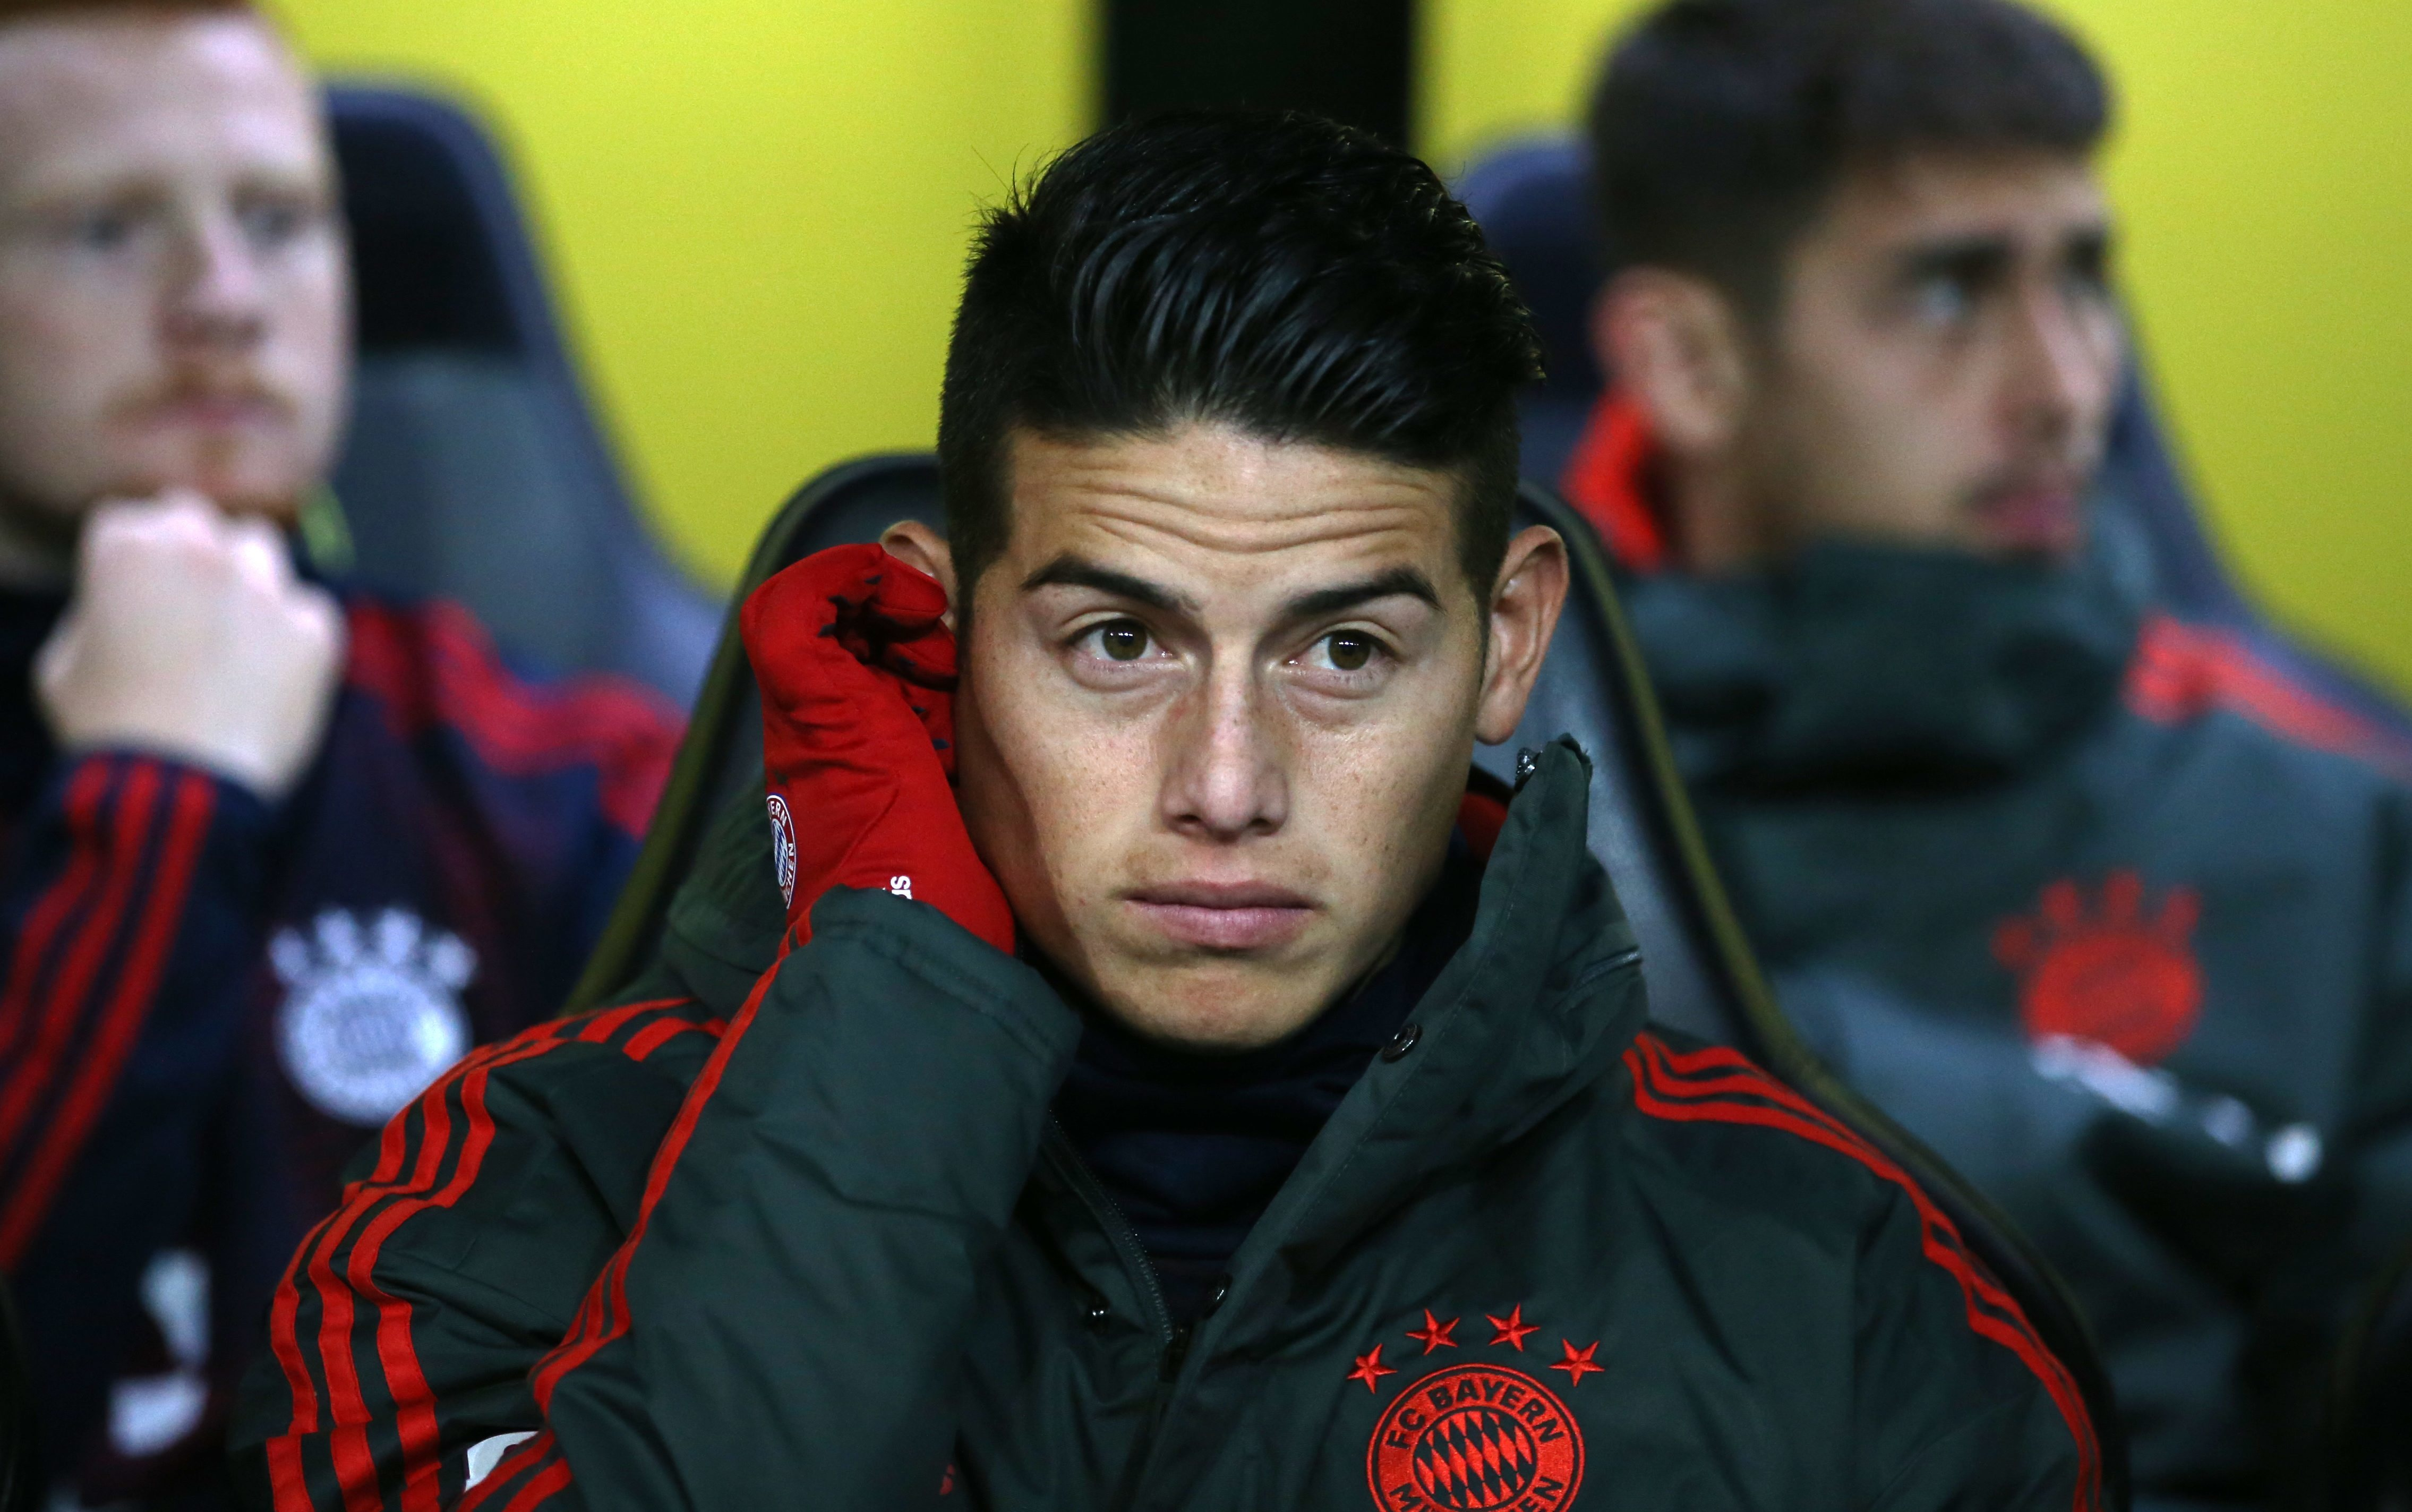 Rodriguez has spent more time on the bench this season than previously. Image PA Images